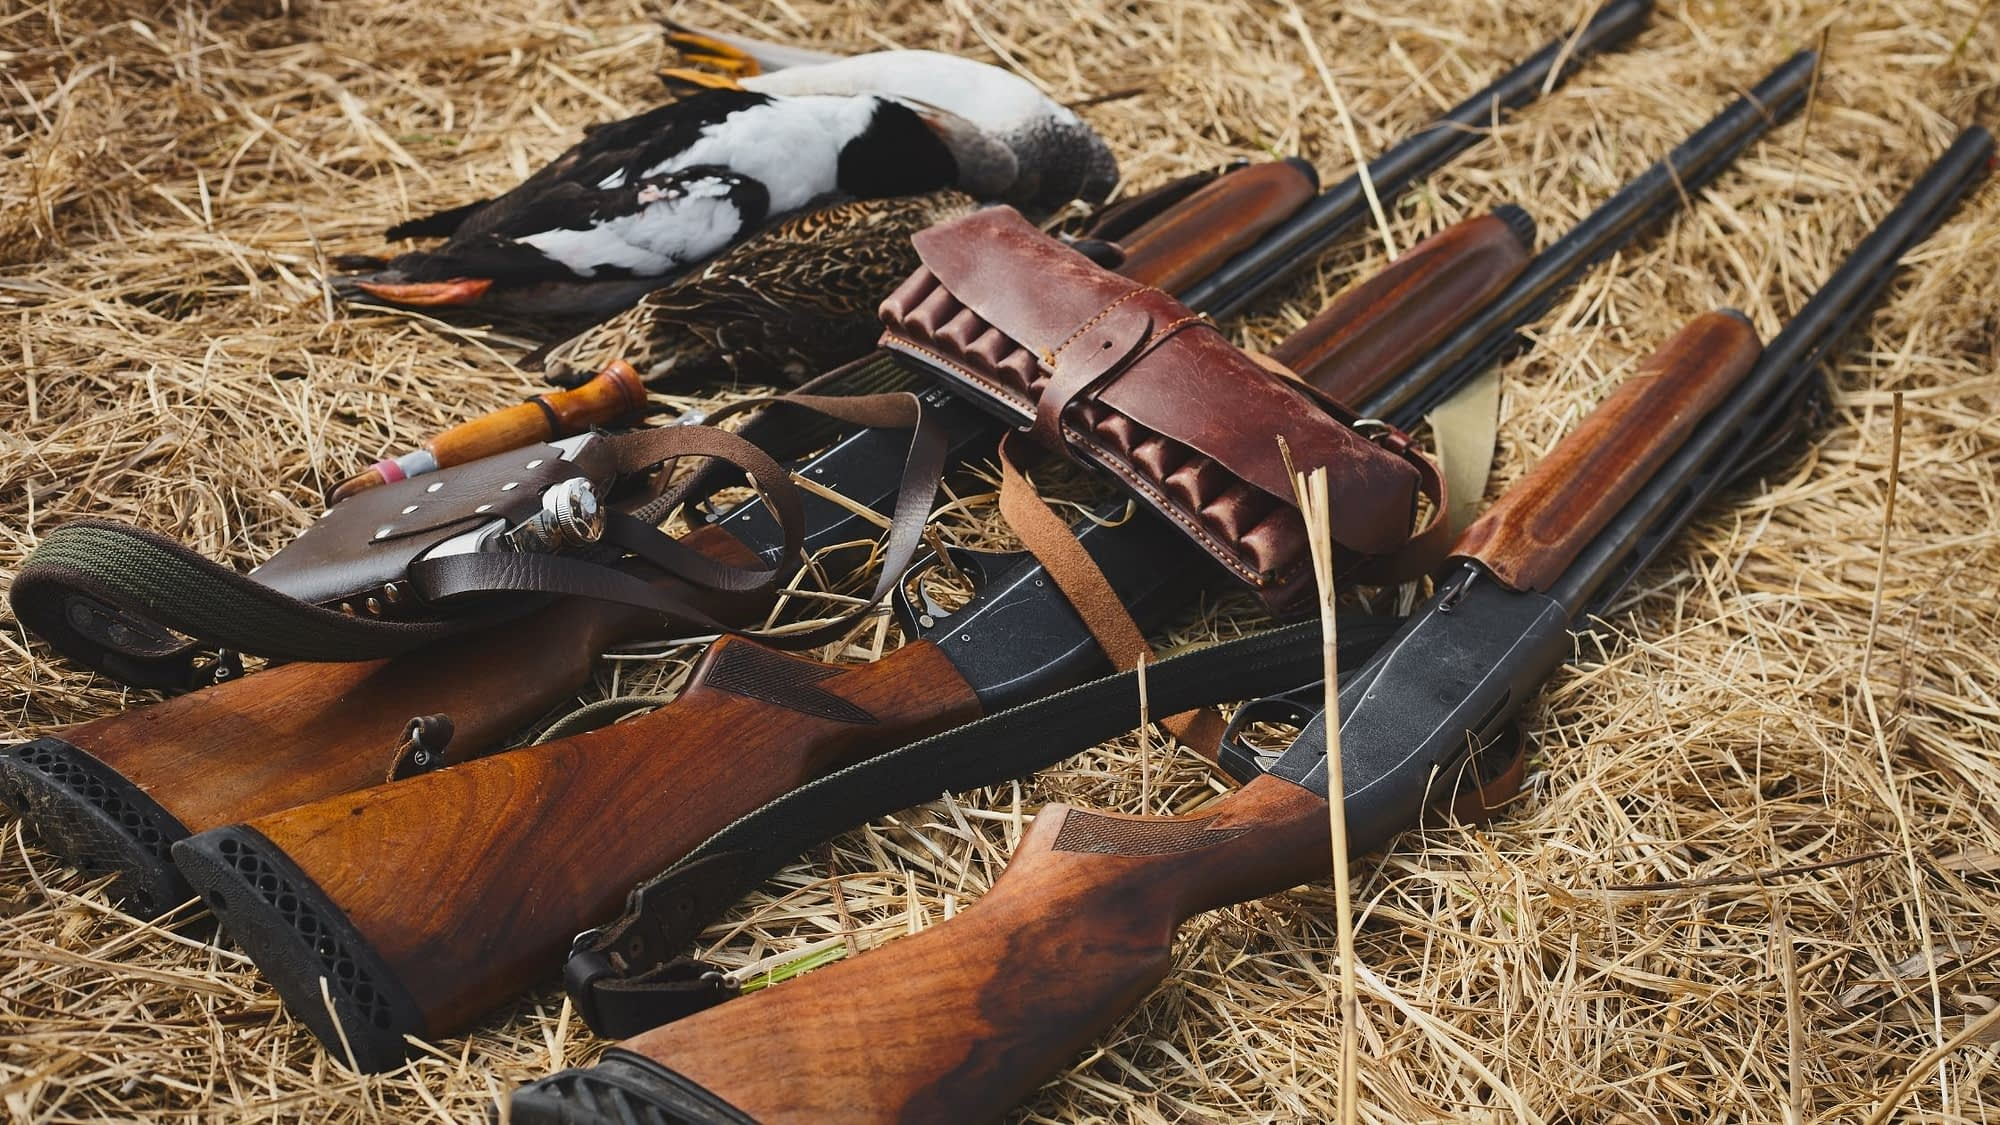 Pump Action vs Semi-Auto For Hunting